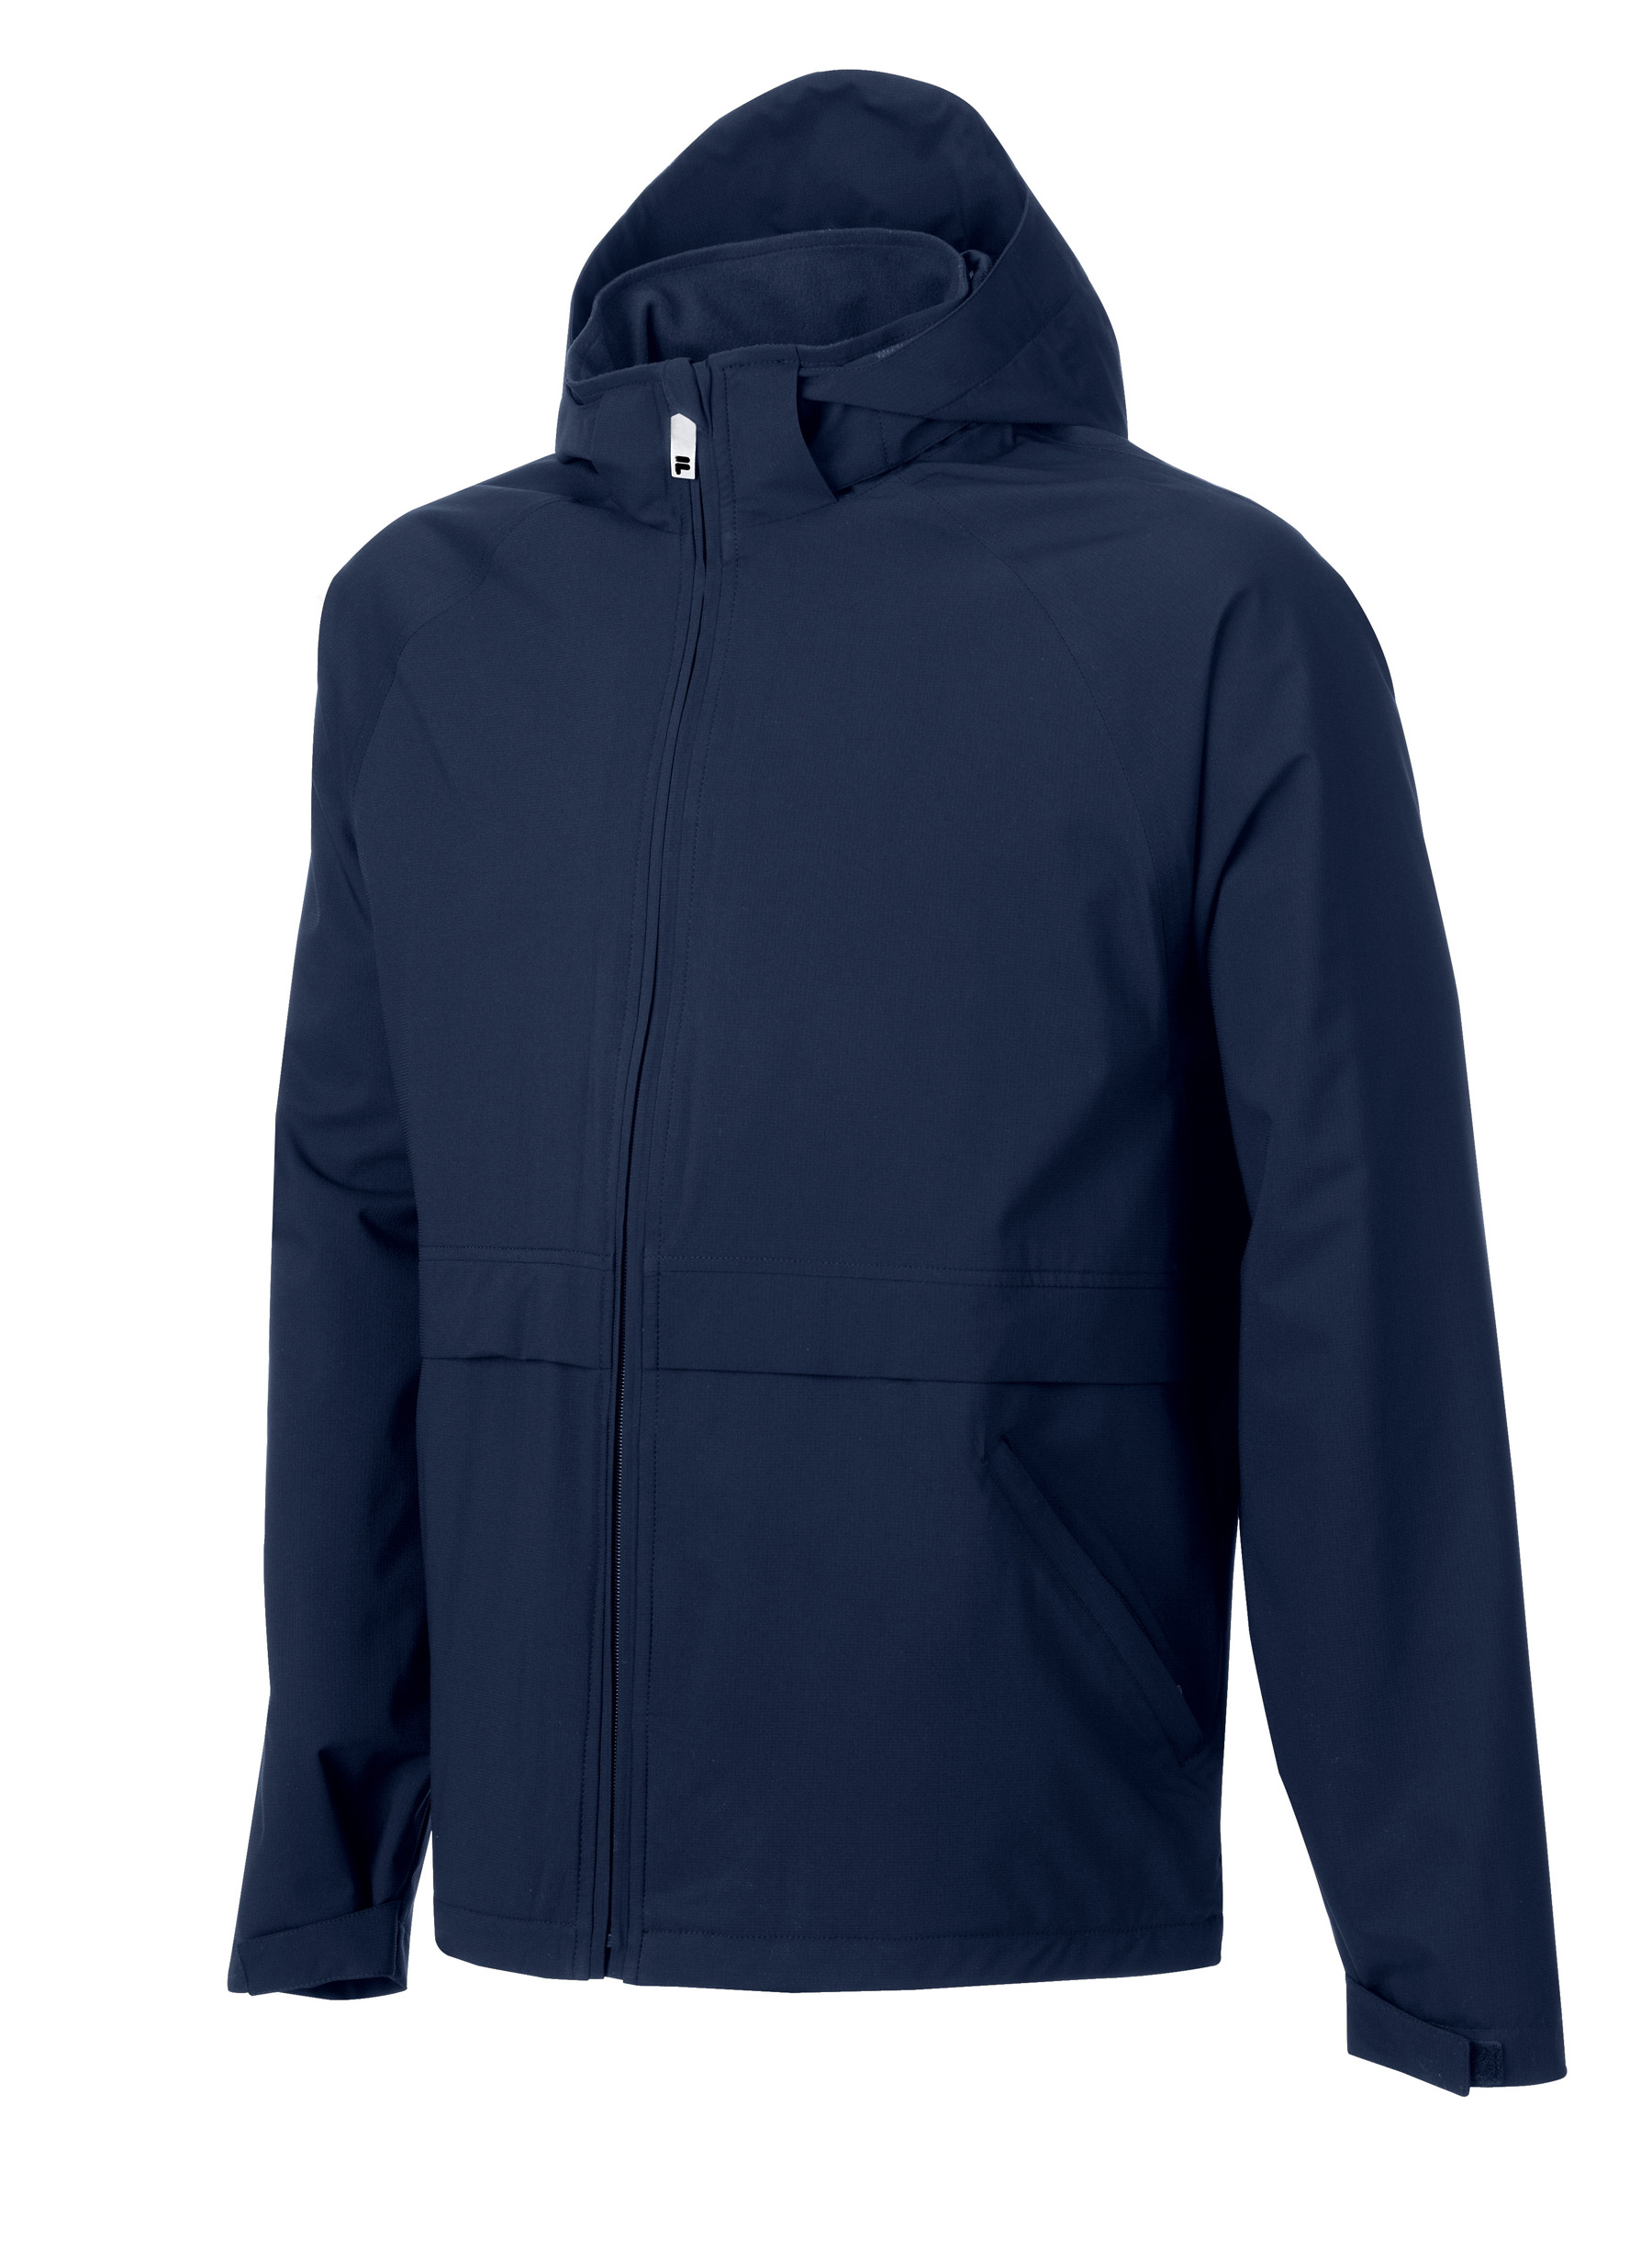 Gear Review: Fila Men's London Waterproof Wind Jacket - Golf ...